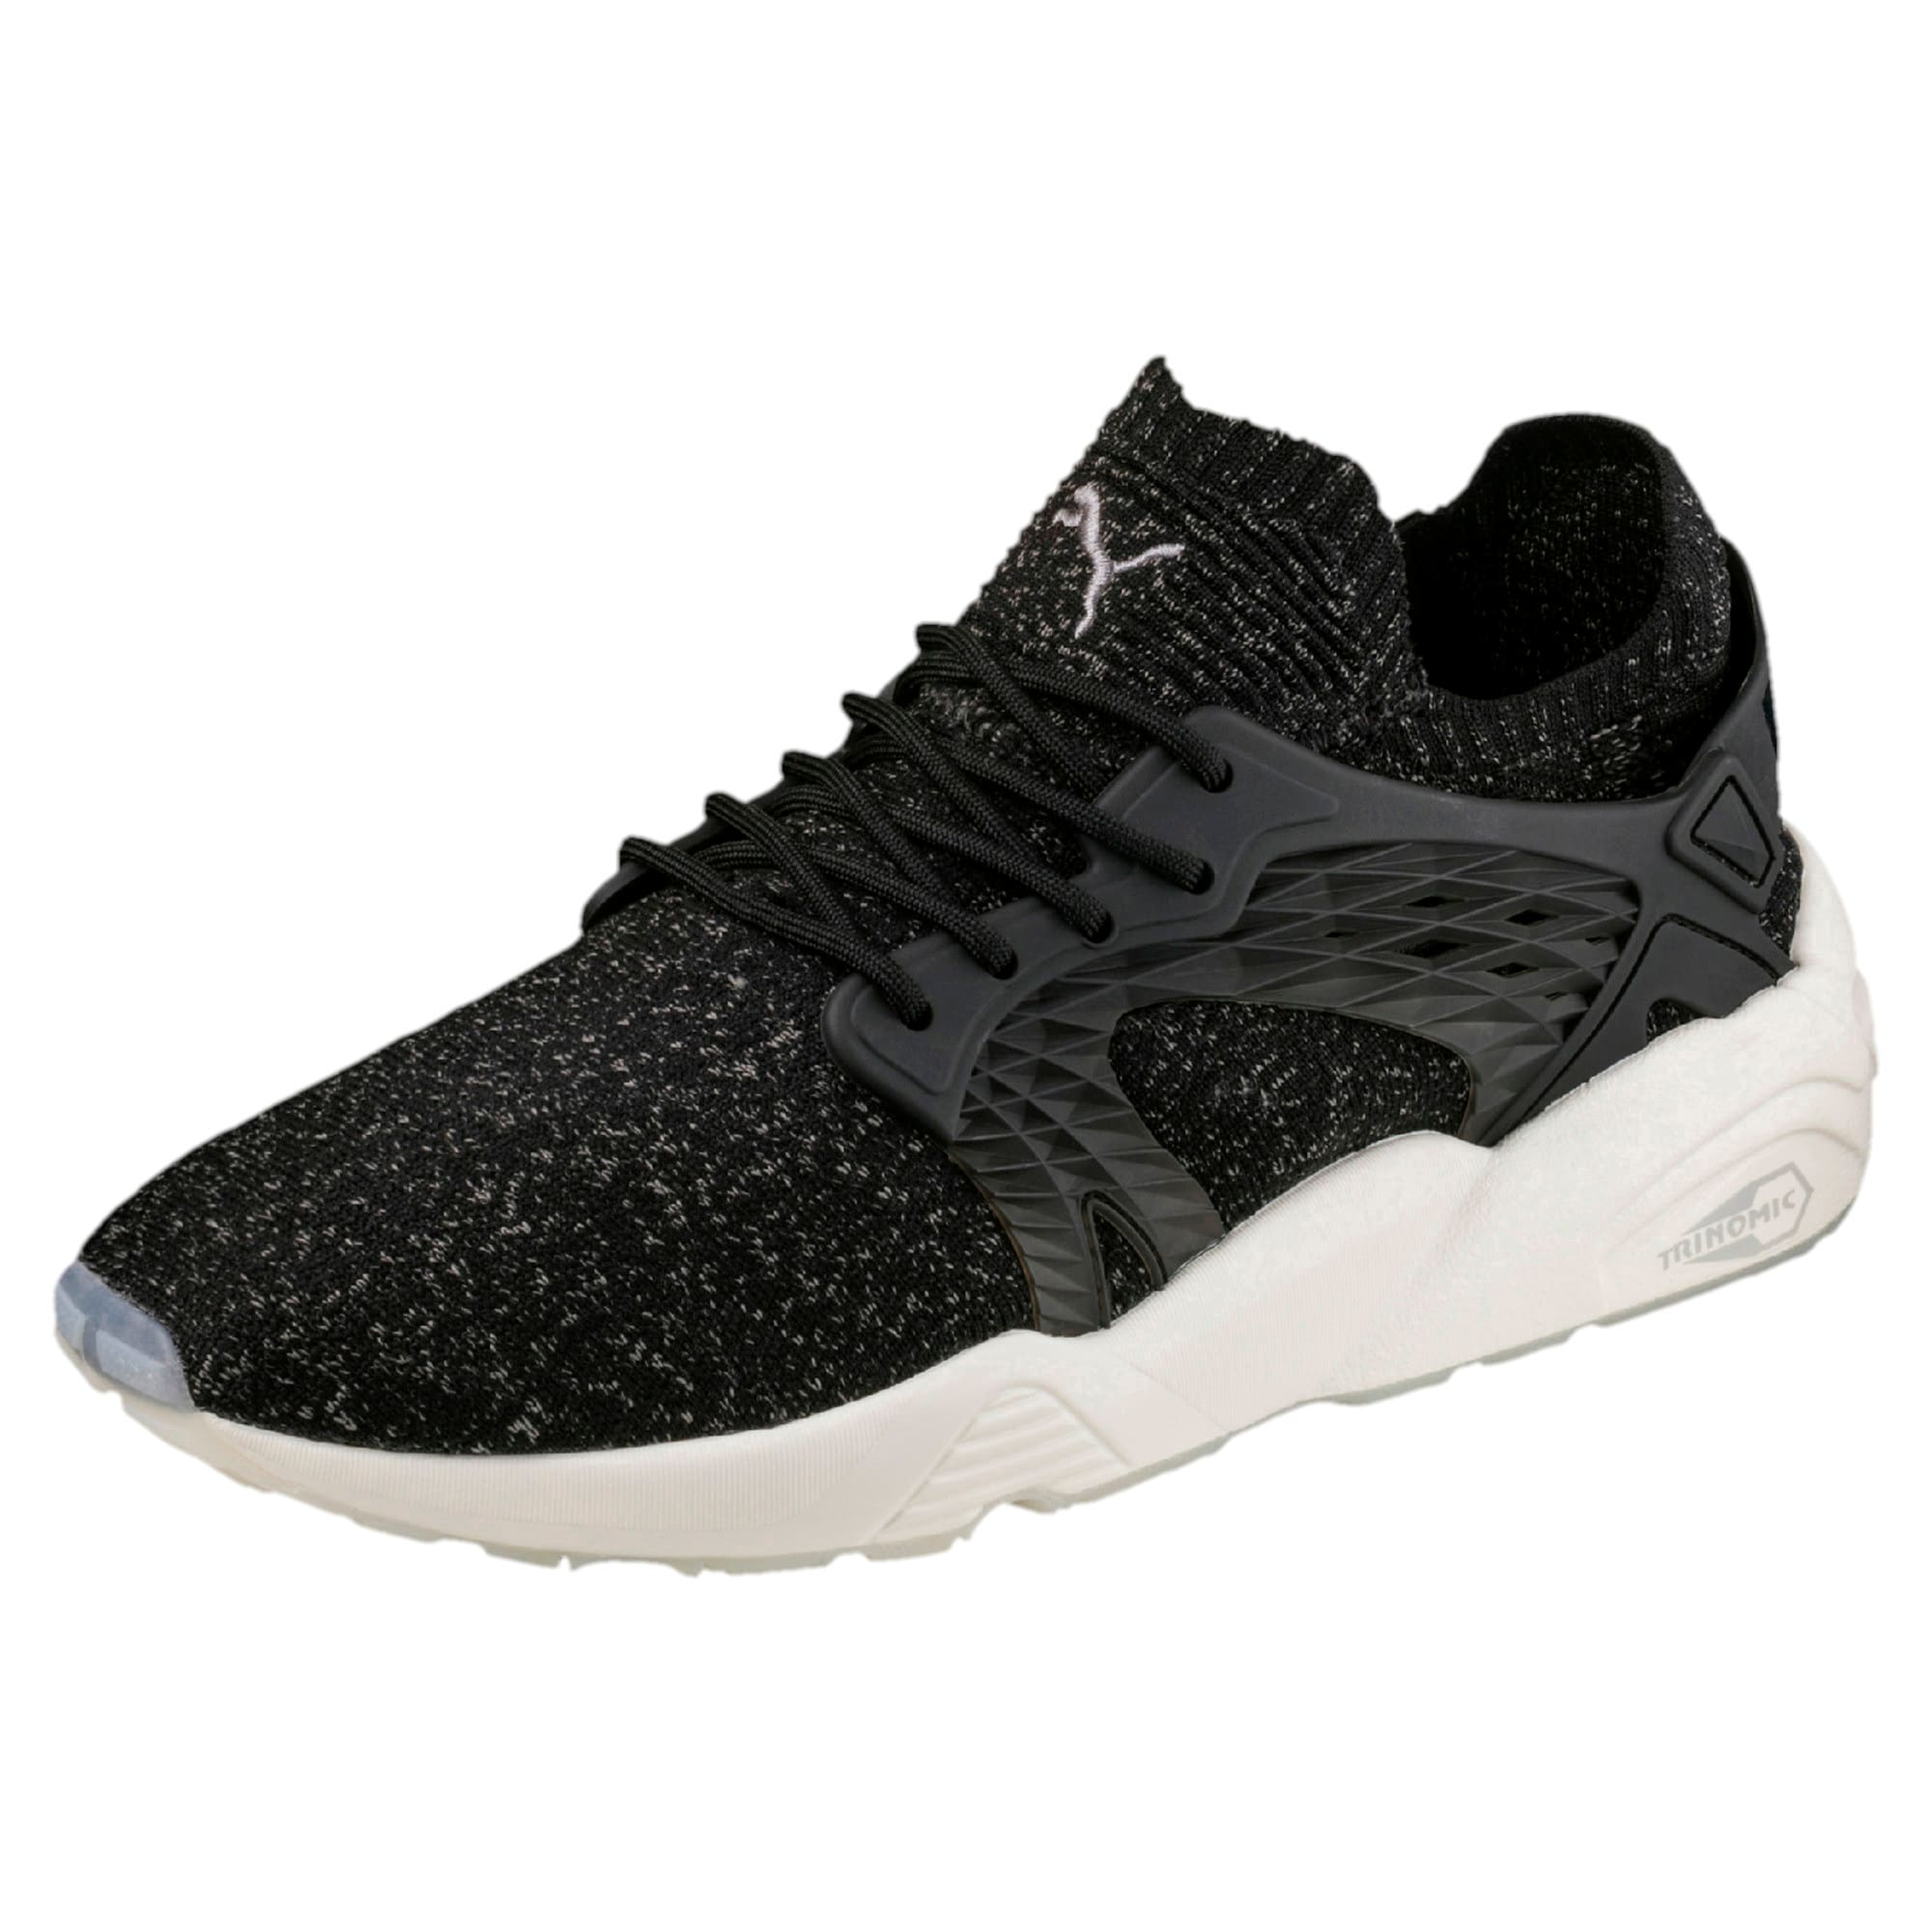 Thumbnail 1 of Blaze Cage evoKNIT Trainers, P Black-Steel Gray-W White, medium-IND